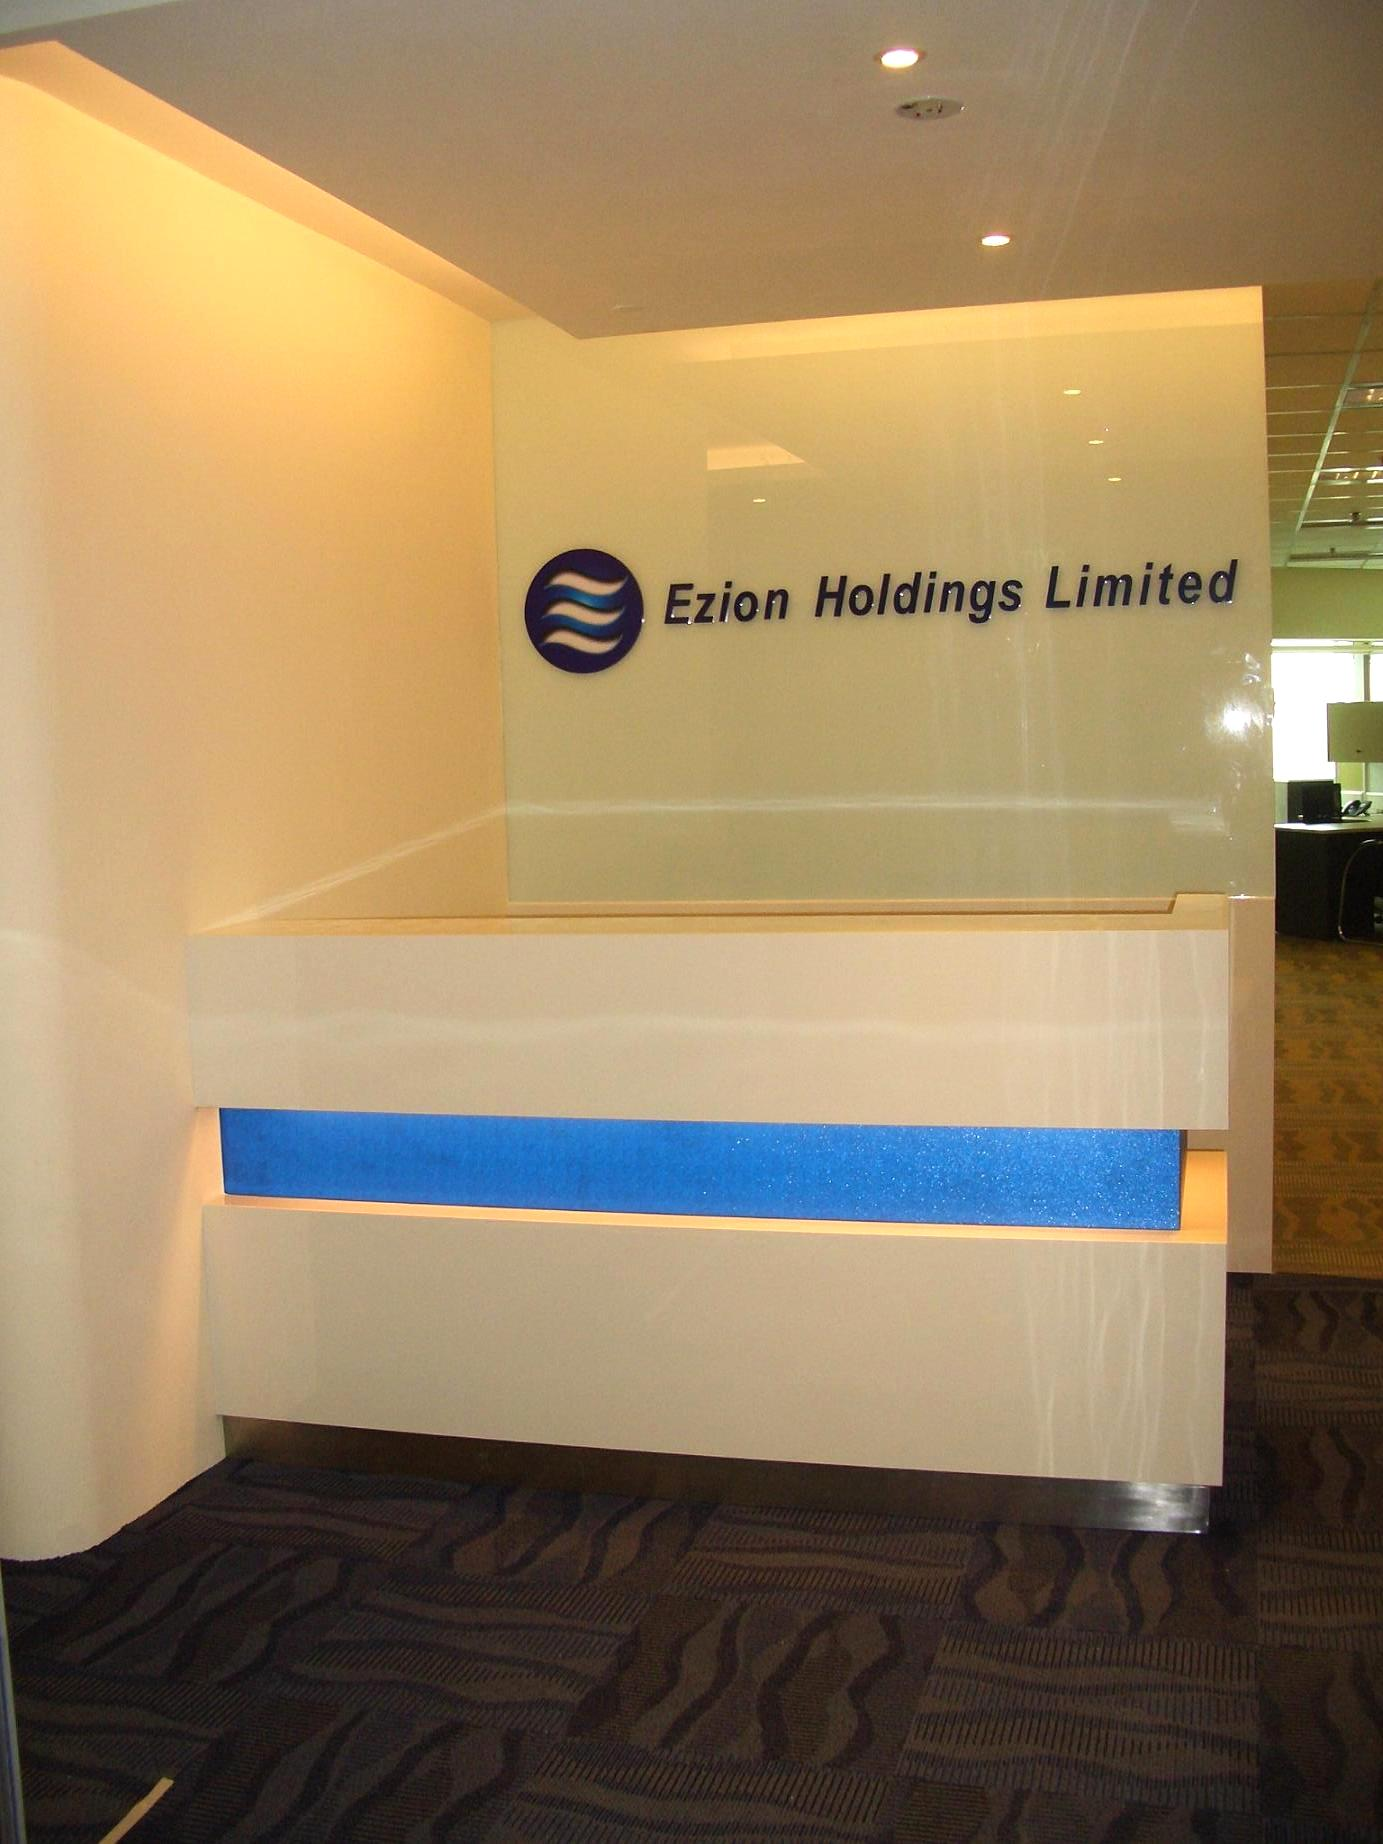 Ezion Holdings